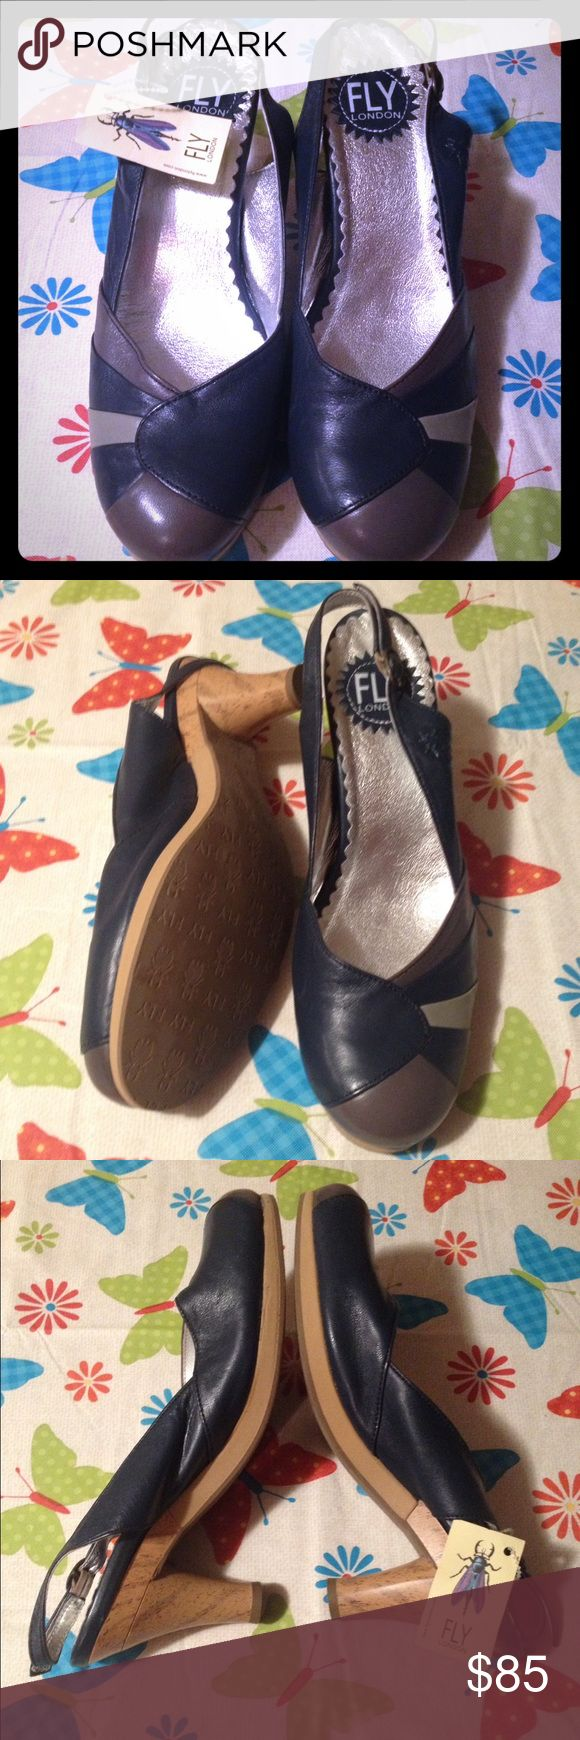 100% Authentic Fly London High Heels❣❣ 🌟Dropped Price🌟100% Authentic Fly London High Heels. Super cute!! Never worn 😳 My mother is a shop-alcoholic! No lie. If I could walk in high heels, I'd be keeping them❣ Fly London Shoes Heels